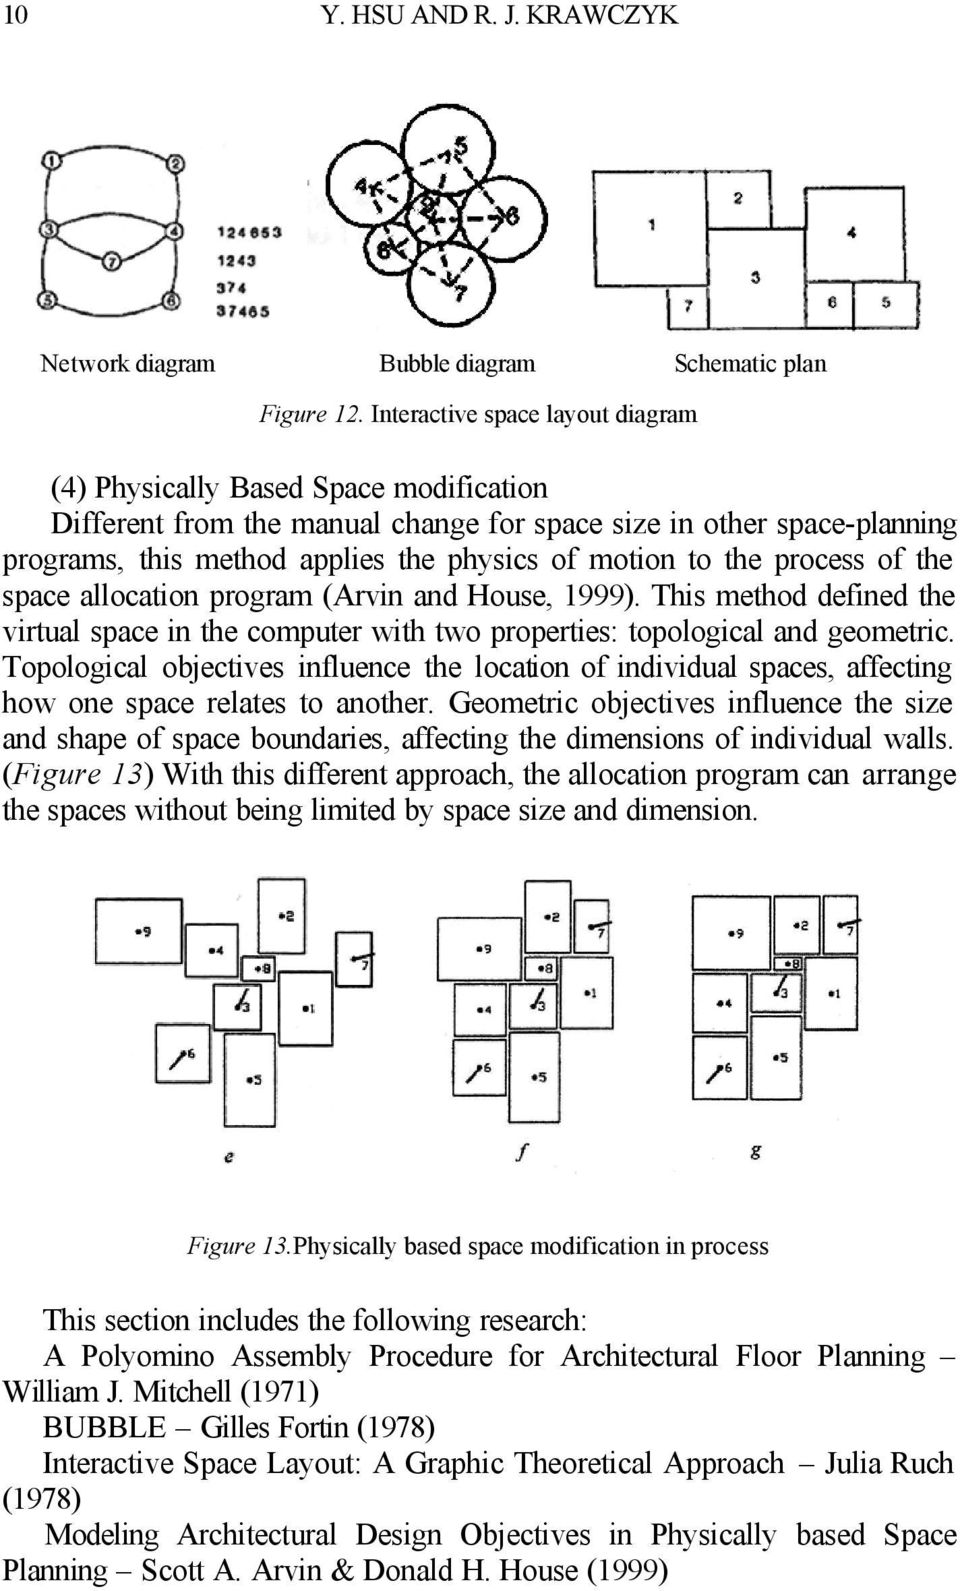 the process of the space allocation program (Arvin and House, 1999). This method defined the virtual space in the computer with two properties: topological and geometric.